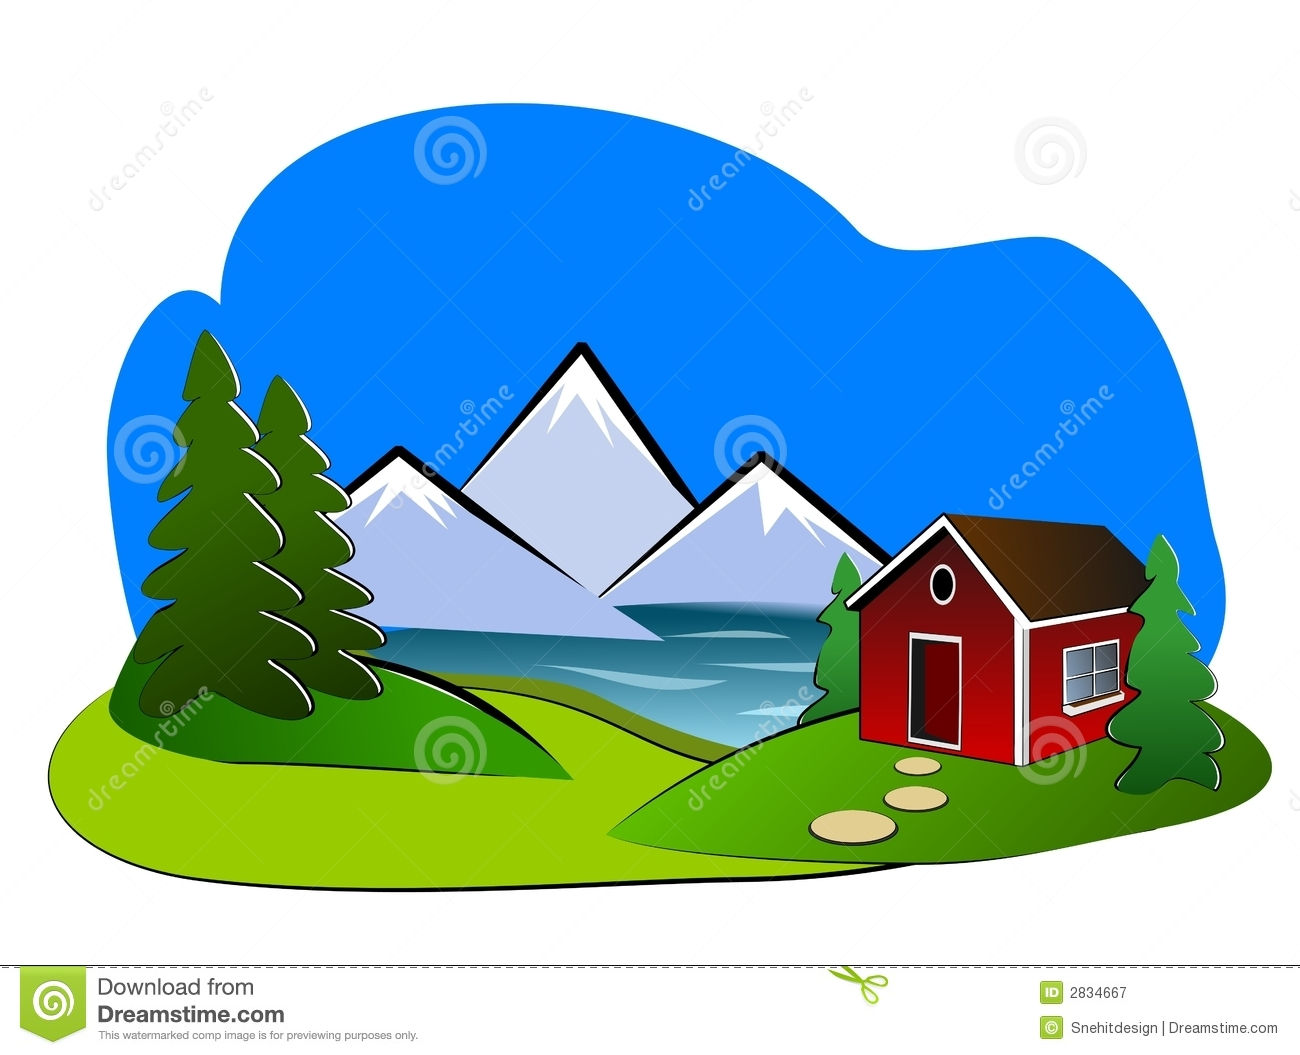 Landscape clipart #4, Download drawings